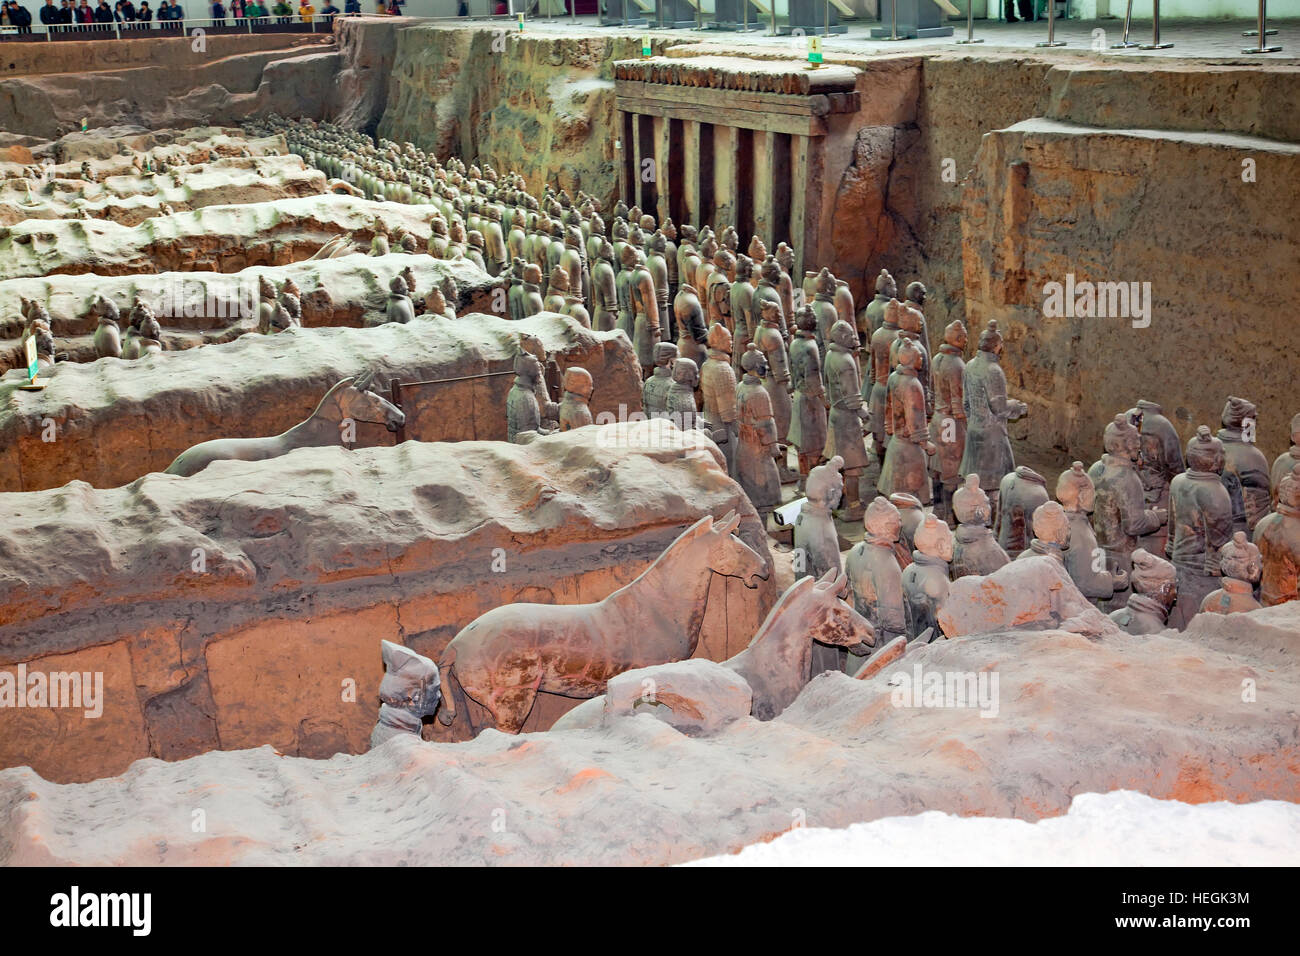 Emperor Qin's Terracotta Army, Xi'an, Terra Cotta Worriers in China - Stock Image